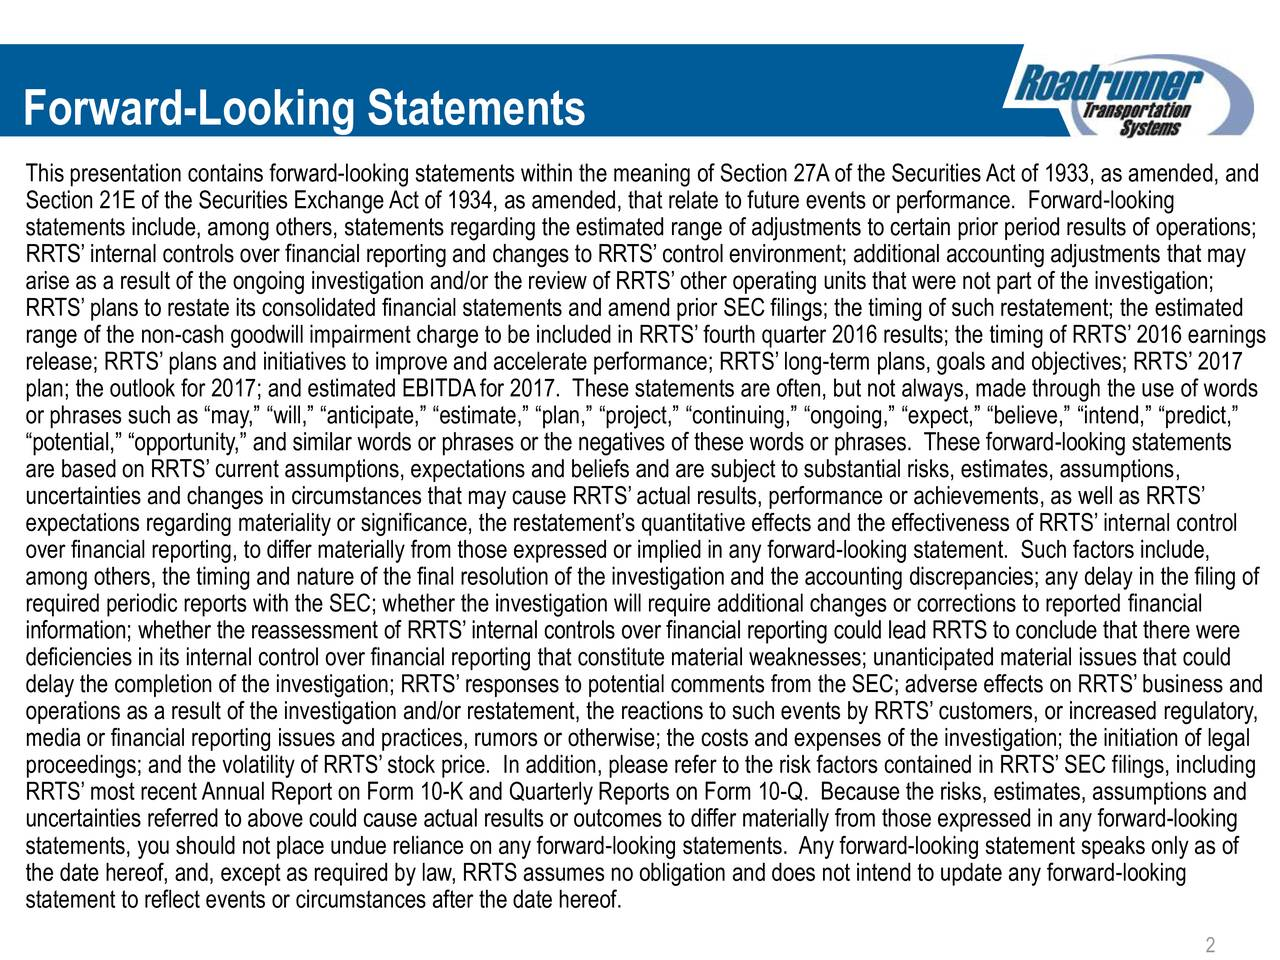 This presentation contains forward-looking statements within the meaning of Section 27Aof the SecuritiesAct of 1933, as amended, and Section 21E of the Securities ExchangeAct of 1934, as amended, that relate to future events or performance. Forward-looking statements include, among others, statements regarding the estimated range of adjustments to certain prior period results of operations; RRTSinternal controls over financial reporting and changes to RRTScontrol environment; additional accounting adjustments that may arise as a result of the ongoing investigation and/or the review of RRTSother operating units that were not part of the investigation; RRTSplans to restate its consolidated financial statements and amend prior SEC filings; the timing of such restatement; the estimated range of the non-cash goodwill impairment charge to be included in RRTSfourth quarter 2016 results; the timing of RRTS2016 earnings release; RRTSplans and initiatives to improve and accelerate performance; RRTSlong-term plans, goals and objectives; RRTS2017 plan; the outlook for 2017; and estimated EBITDAfor 2017. These statements are often, but not always, made through the use of words or phrases such as may, will, anticipate, estimate, plan, project, continuing, ongoing, expect, believe, intend, predict, potential, opportunity, and similar words or phrases or the negatives of these words or phrases. These forward-looking statements are based on RRTScurrent assumptions, expectations and beliefs and are subject to substantial risks, estimates, assumptions, uncertainties and changes in circumstances that may cause RRTSactual results, performance or achievements, as well as RRTS expectations regarding materiality or significance, the restatements quantitative effects and the effectiveness of RRTSinternal control over financial reporting, to differ materially from those expressed or implied in any forward-looking statement. Such factors include, among others, the timing and nature of the fin